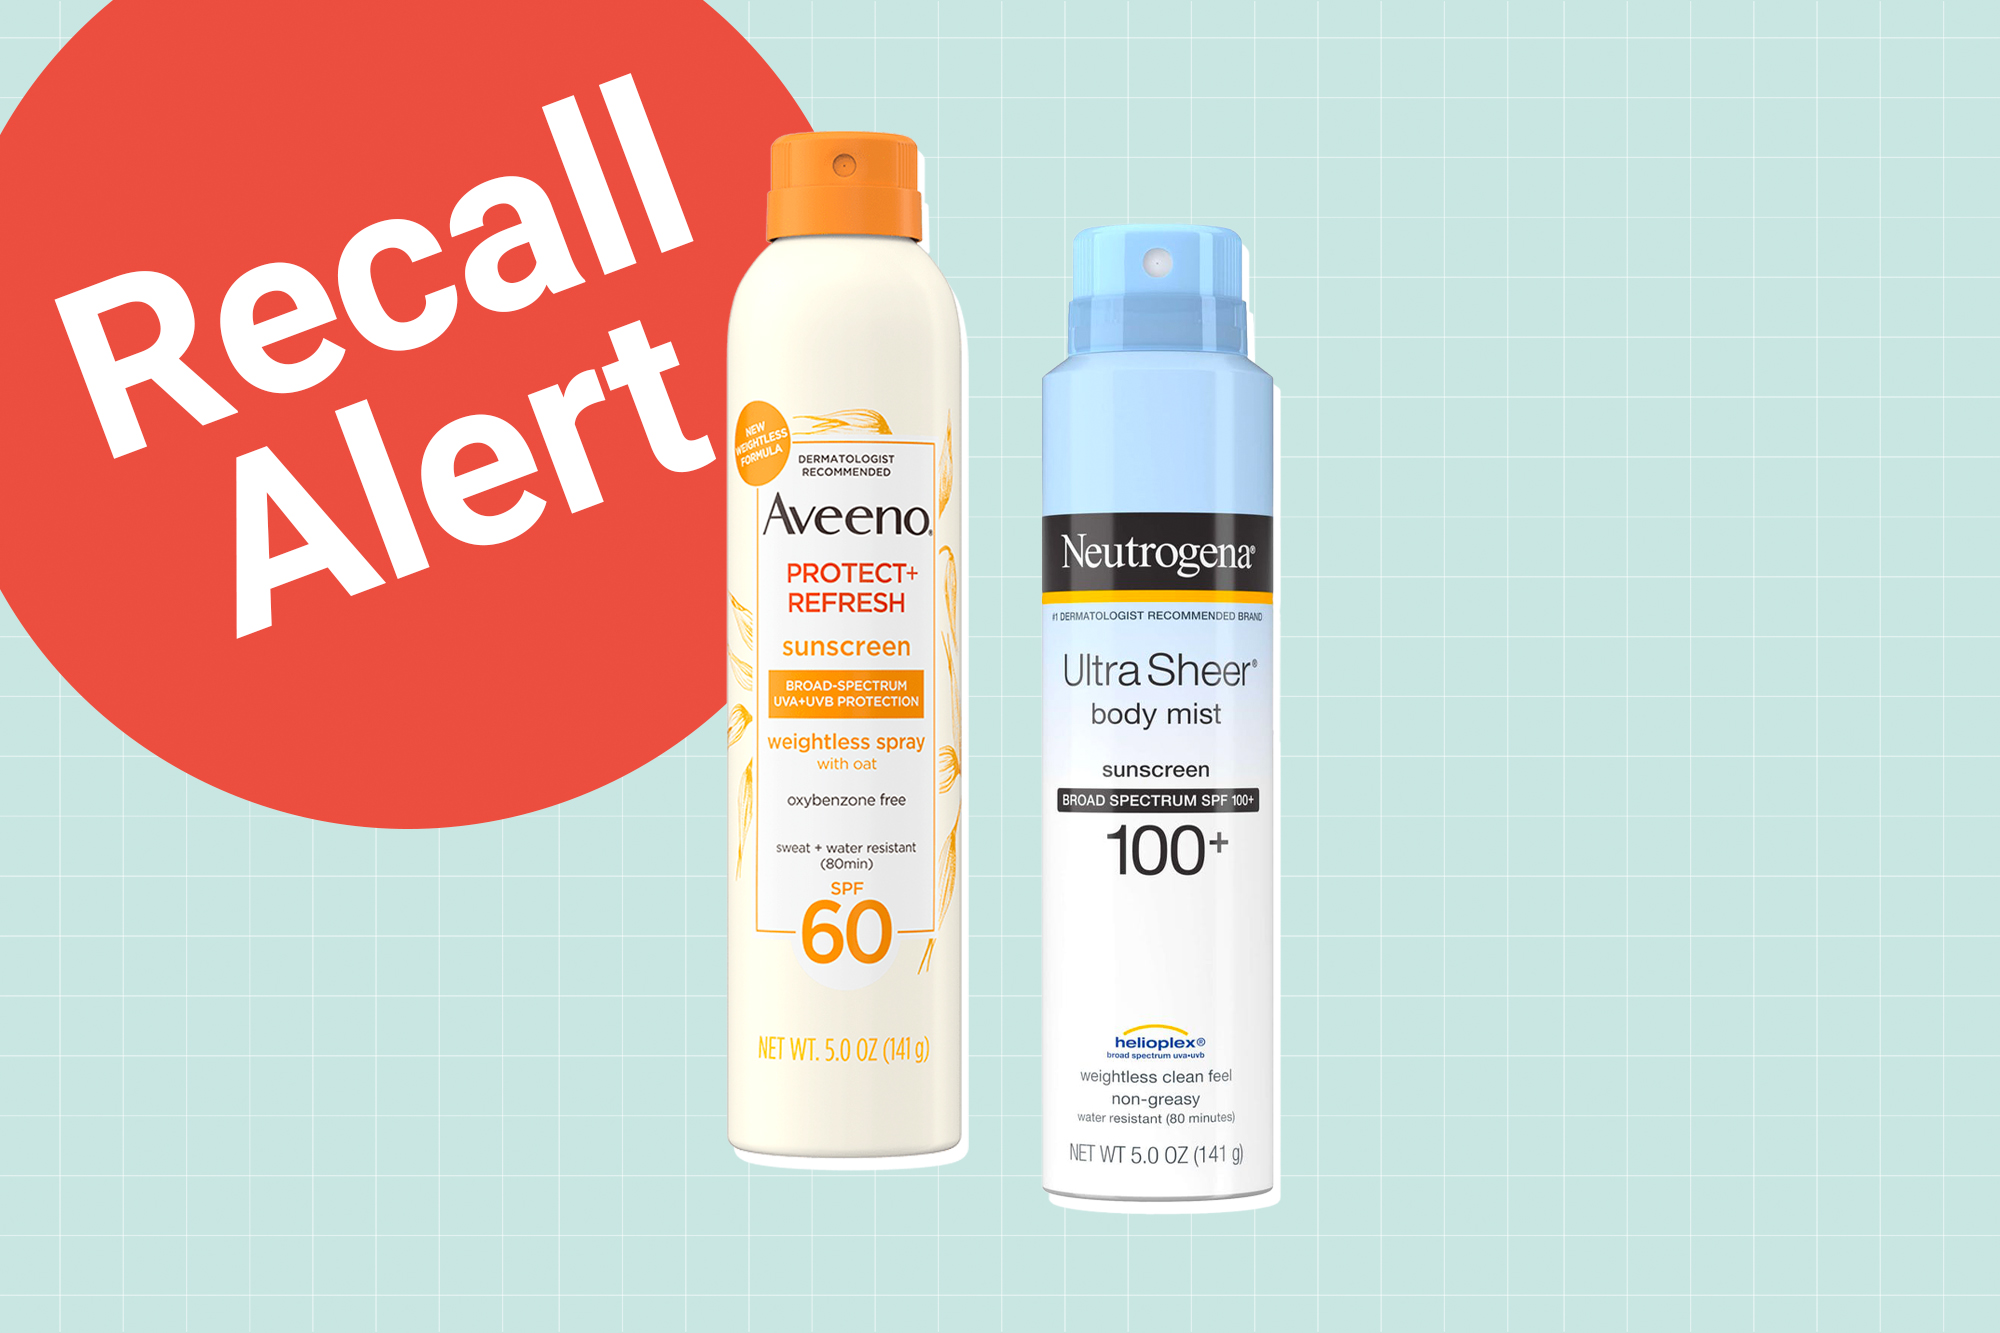 2 spray on sunscreens by Aveeno and Neutrogena on a designed background with a recall button